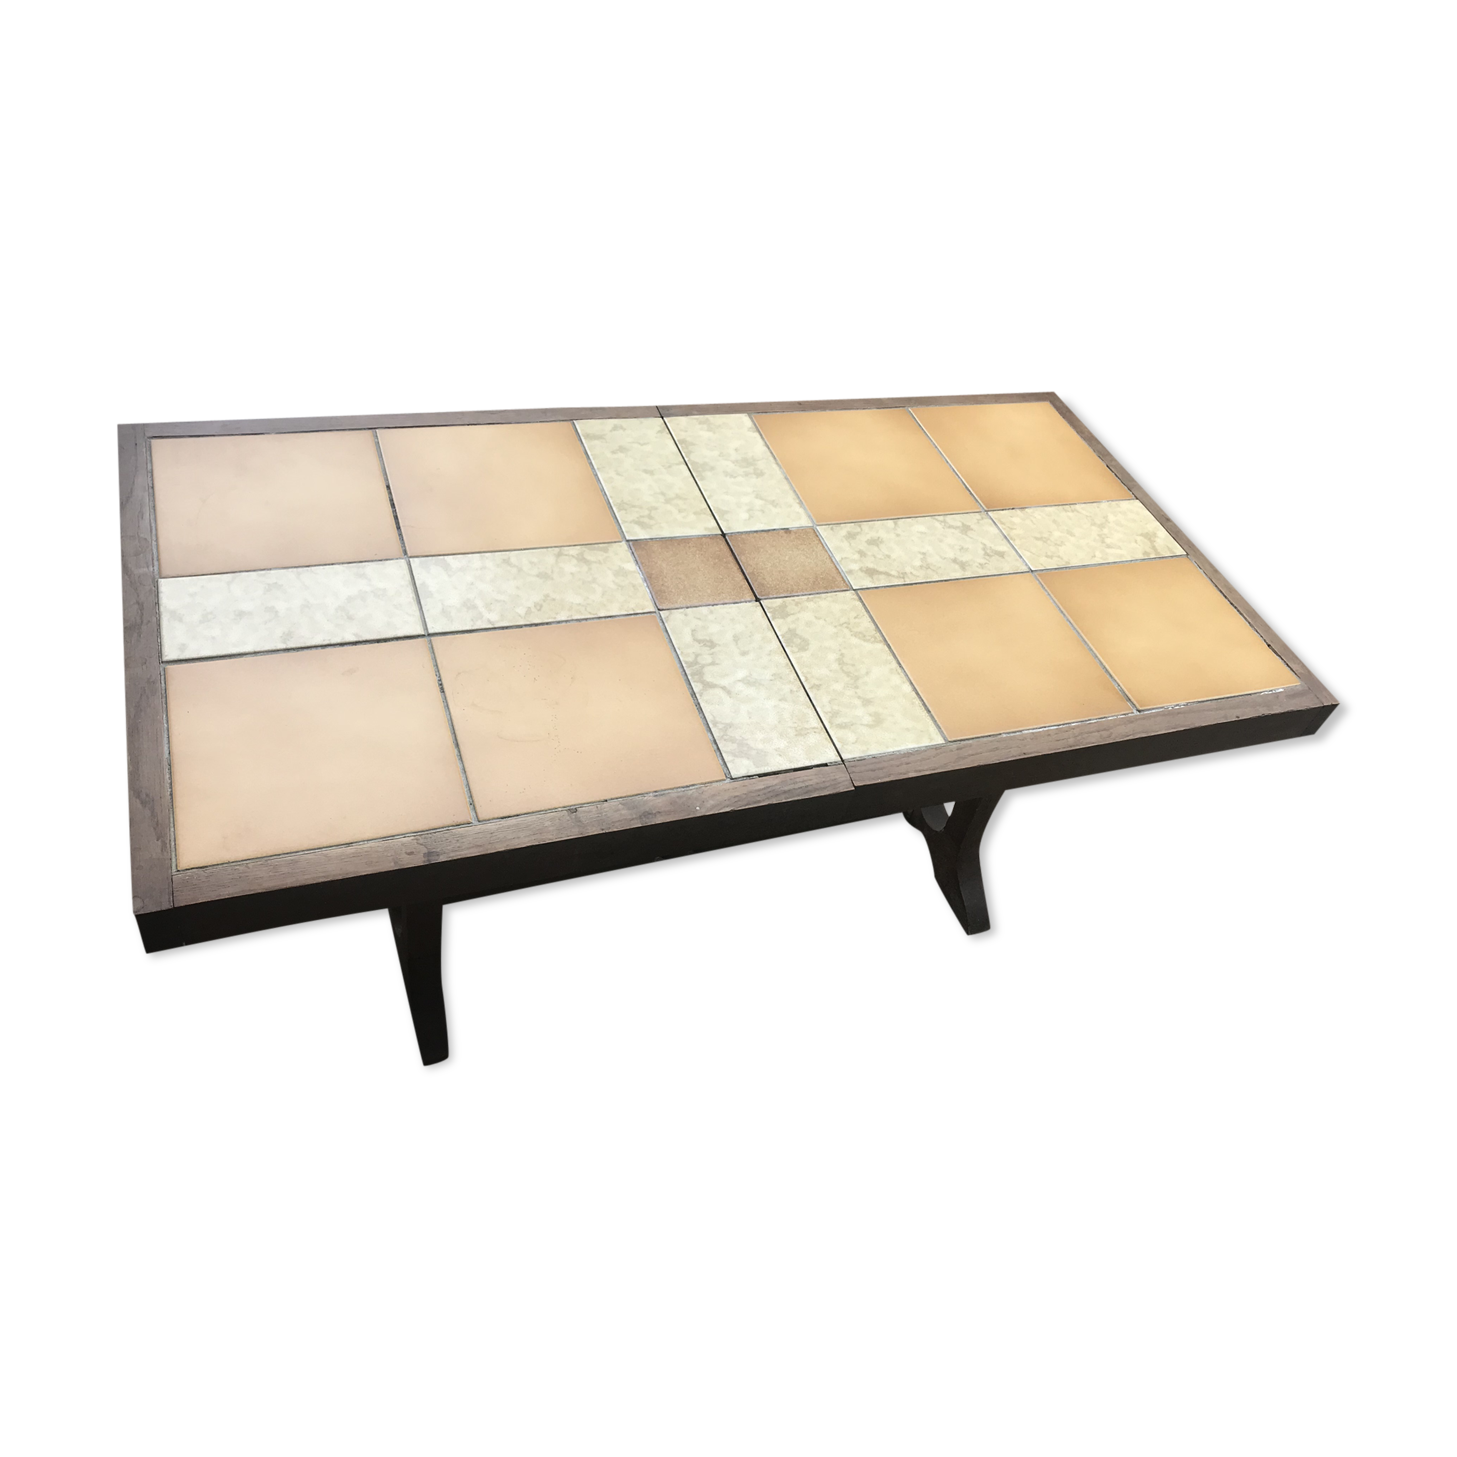 Coffee Table With Chessboard Vinterior